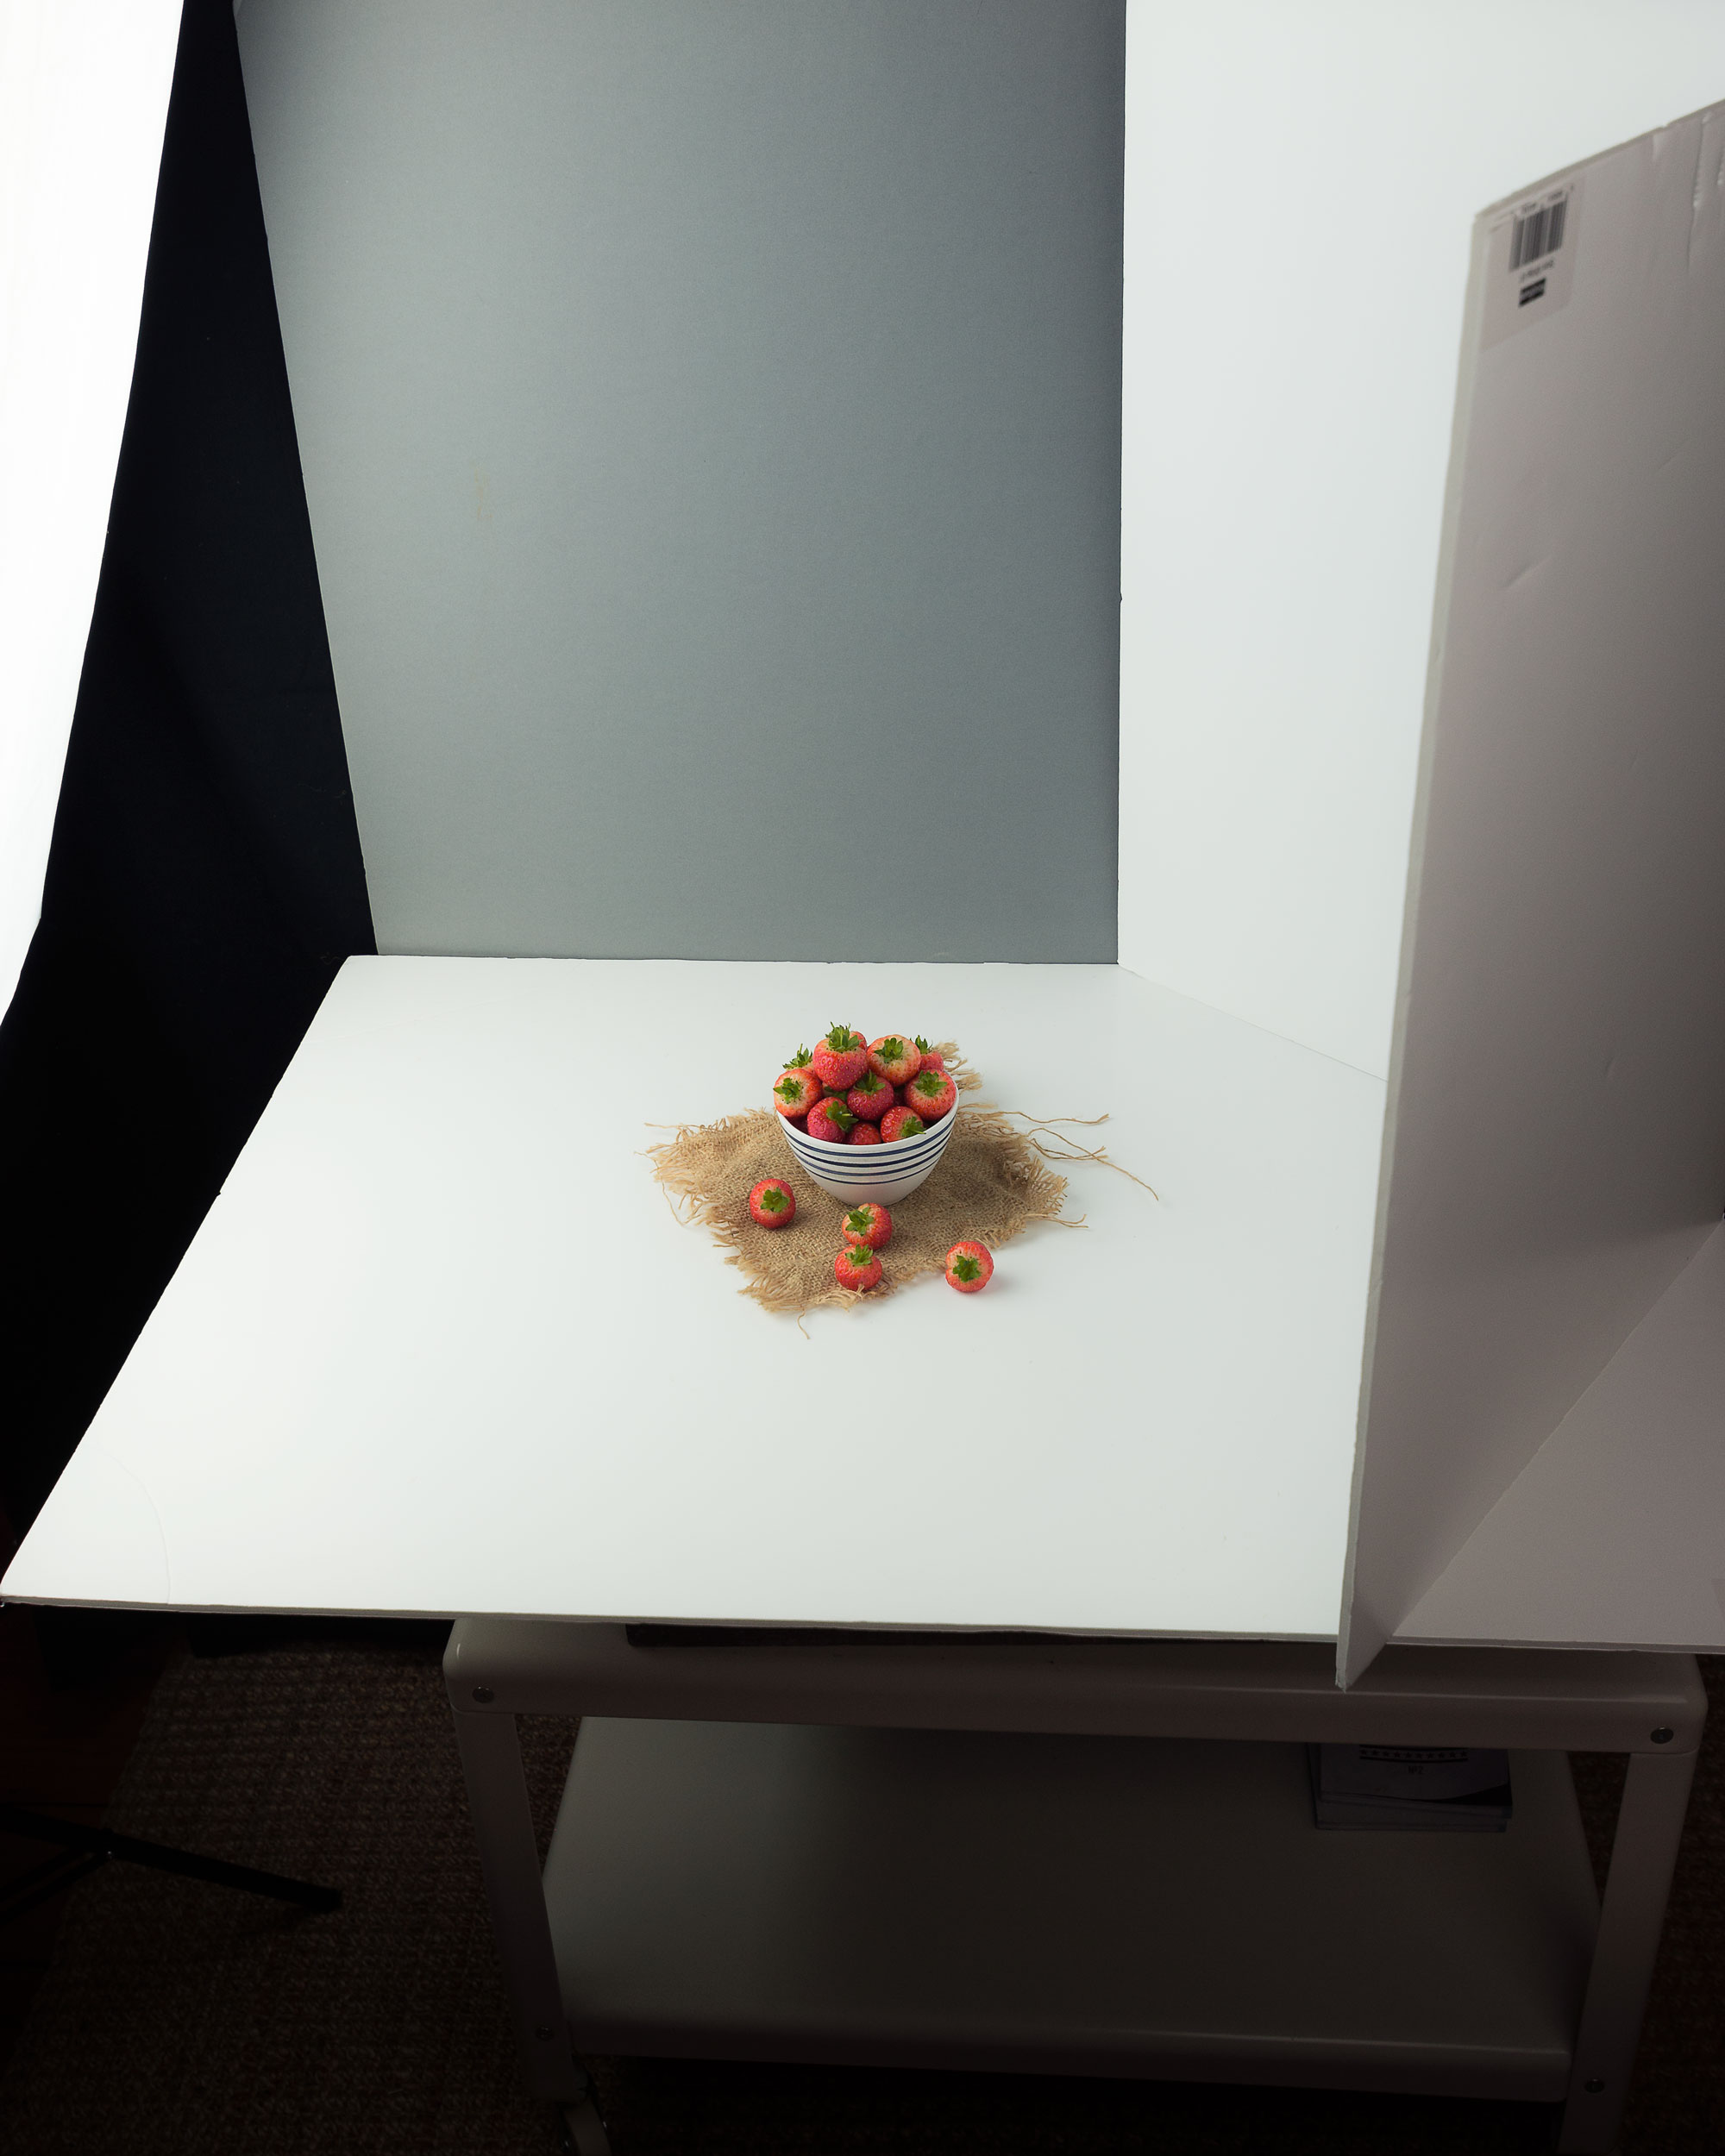 BTS of the strawberries shot above. I positioned a single soft box on the left hand side on 4/5ths power. The base card is semi gloss which reflects some of the light onto the underside of the strawberries and the bowl. On the right hand side I have a white semi gloss bounce card, folded to create two 45° angles. This bounces the light from the soft box back onto the front and back of the subject. I find this set up helps to create a more natural outdoor look with less shadow and contrast. The backboard is a soft grey bounce card, I edited this in post to have a bluer hue reminiscent of the sky. The small piece of hessian sack is used to create interest and I added a spoon to give the final image an anchor. I often find that the more simple the set up the stronger the final image is and this shot is definitely a good example of that philosophy.    Soft Boxes